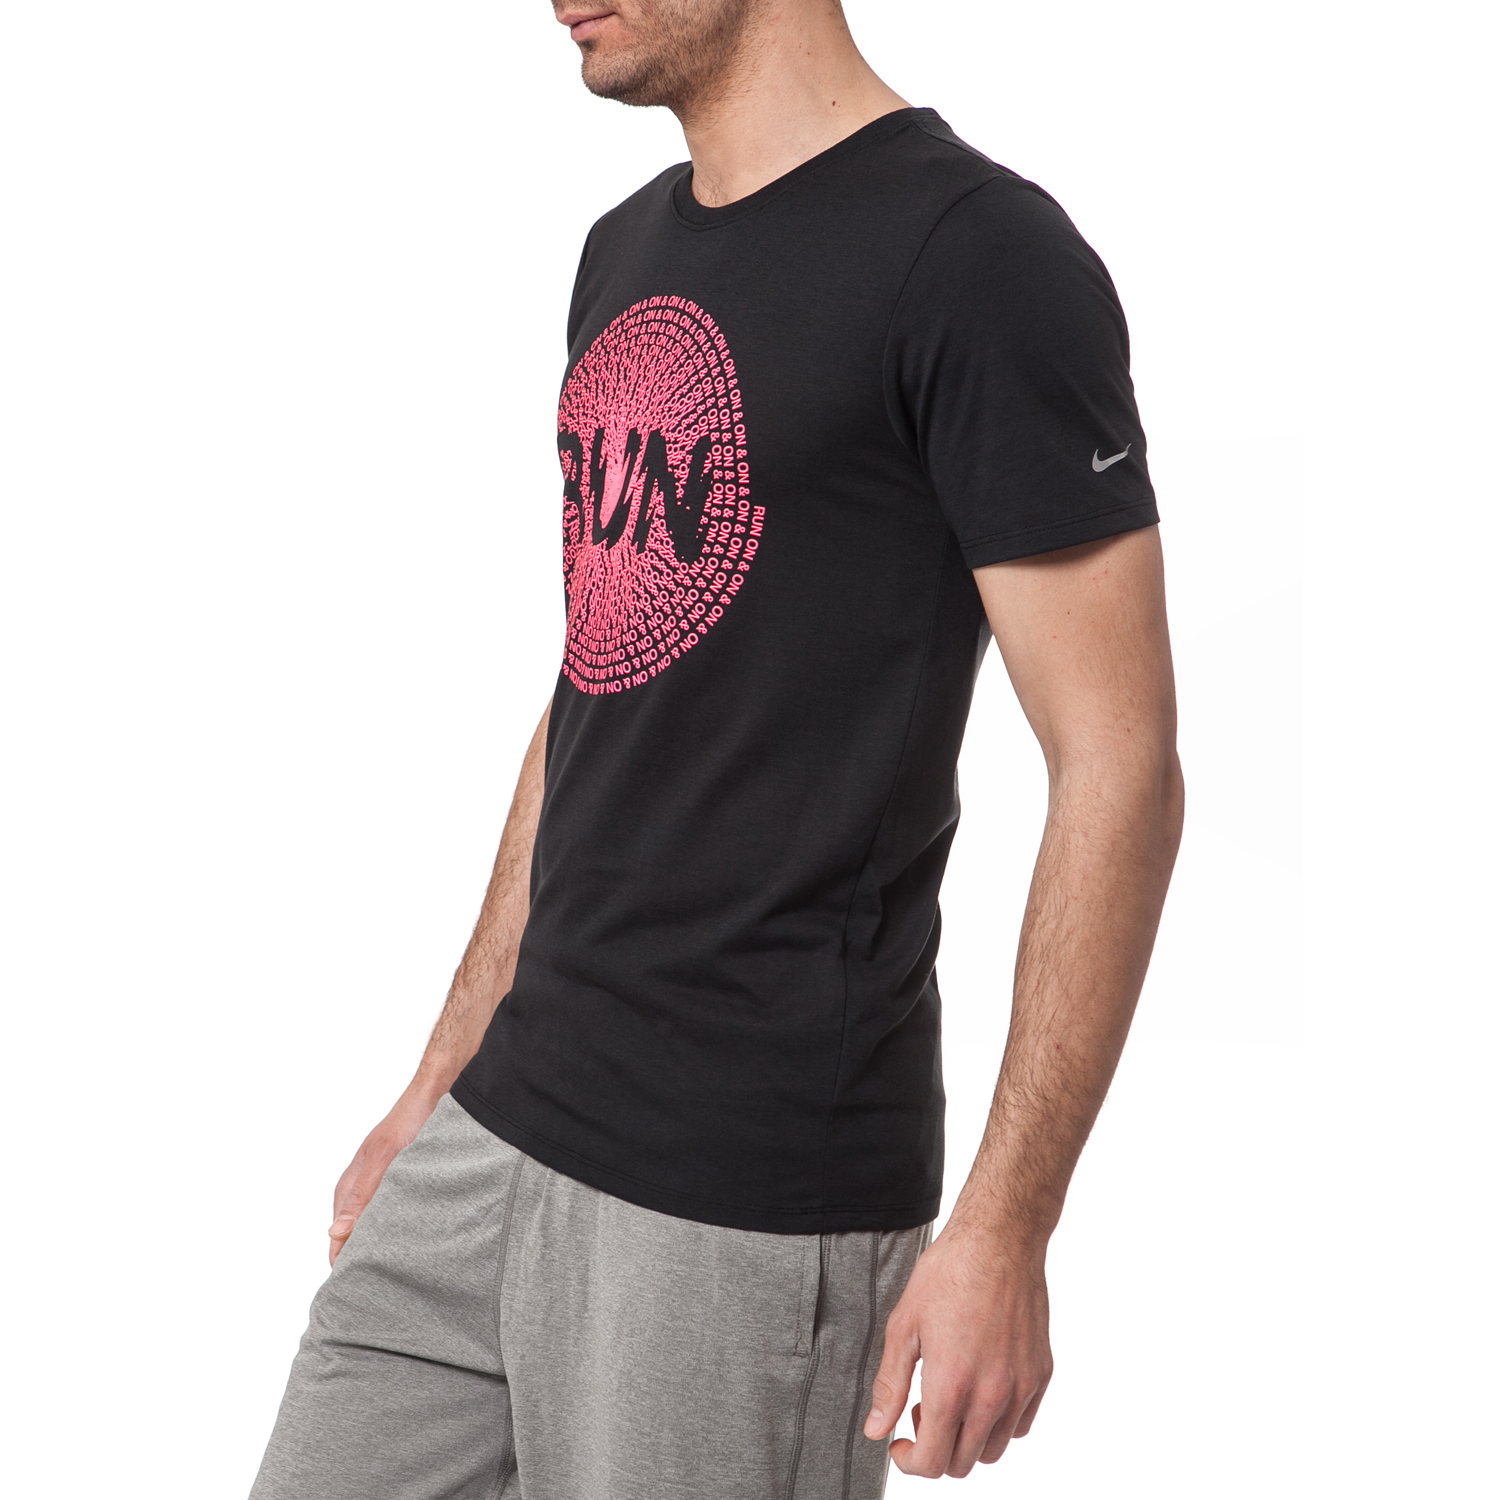 abac18d2904a NIKE - Ανδρικό t-shirt Nike RUN ON AND ON μαύρο